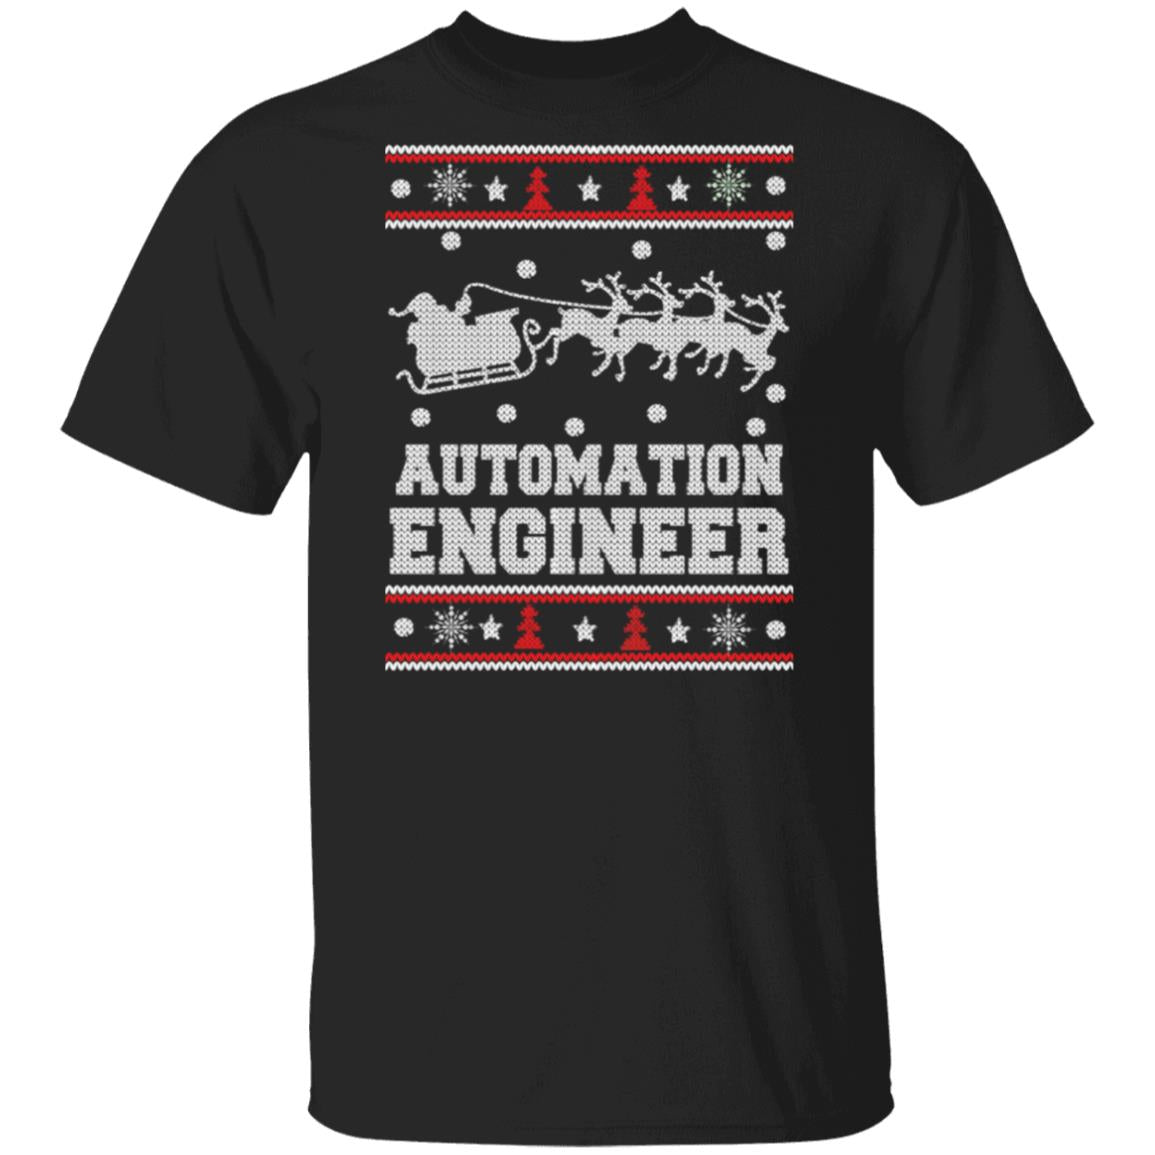 Automation engineer-Engineer Christmas sweater T-Shirt